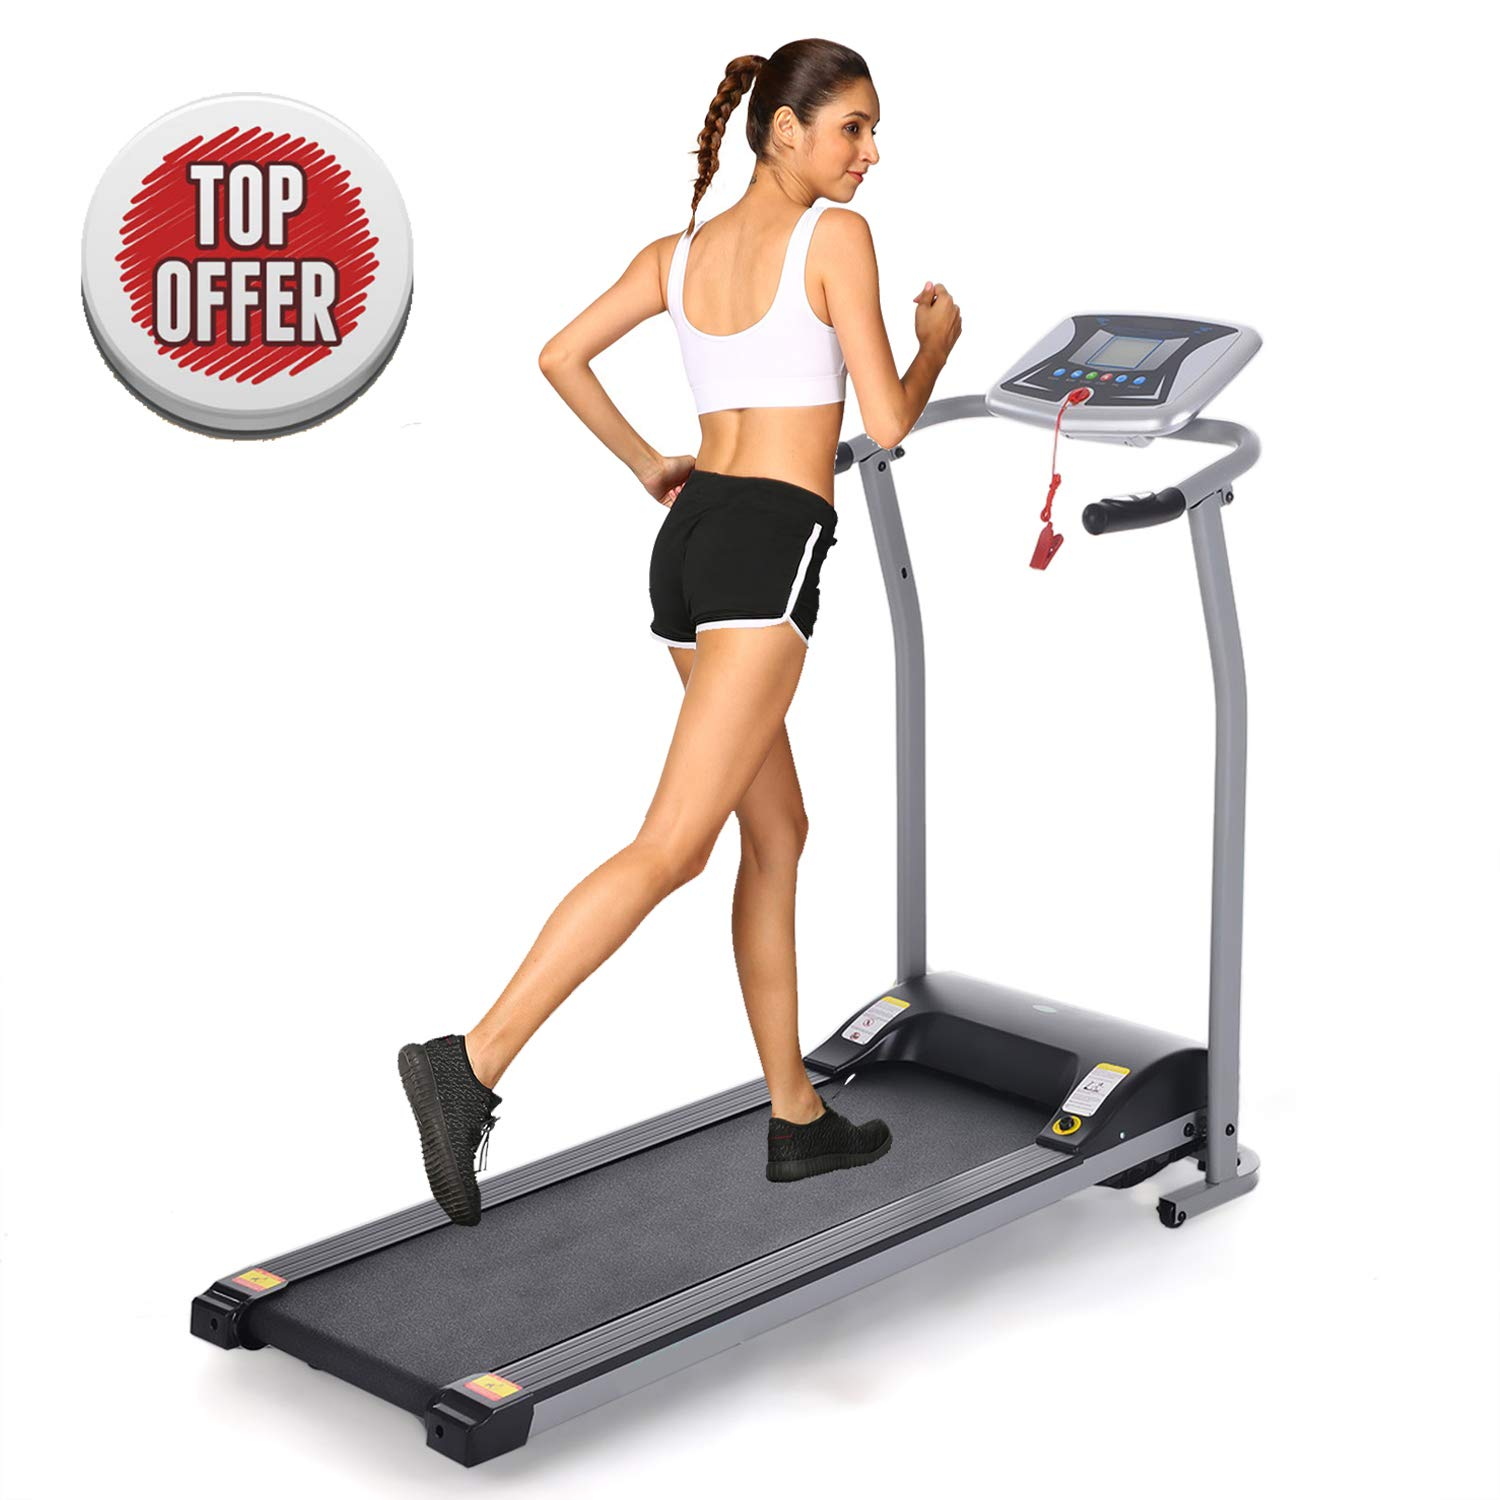 Folding Electric Treadmill Running Machine Power Motorized for Home Gym Exercise Walking Fitness (1.5 HP_Silver_Not Incline) by ncient